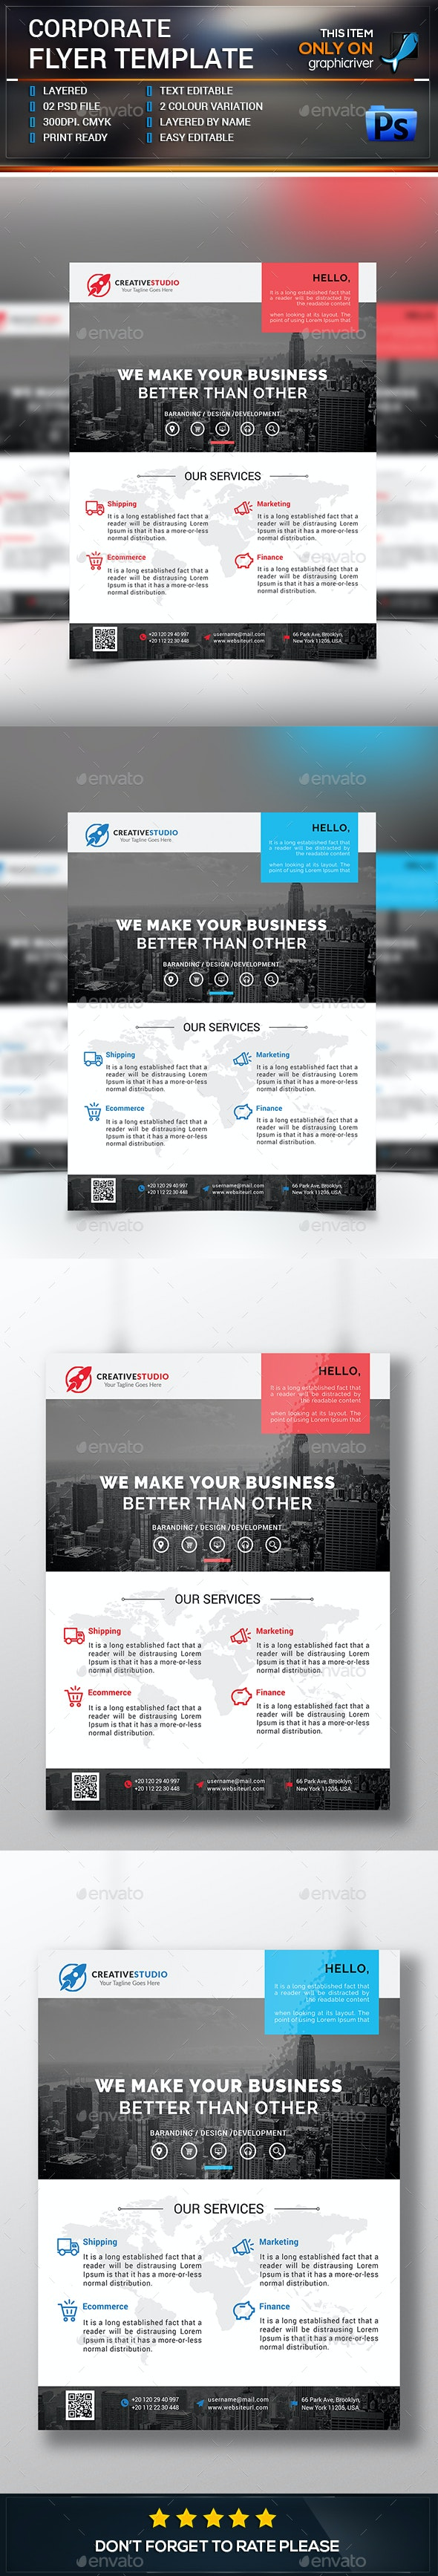 Corporate Flyer Tamplate - Corporate Flyers